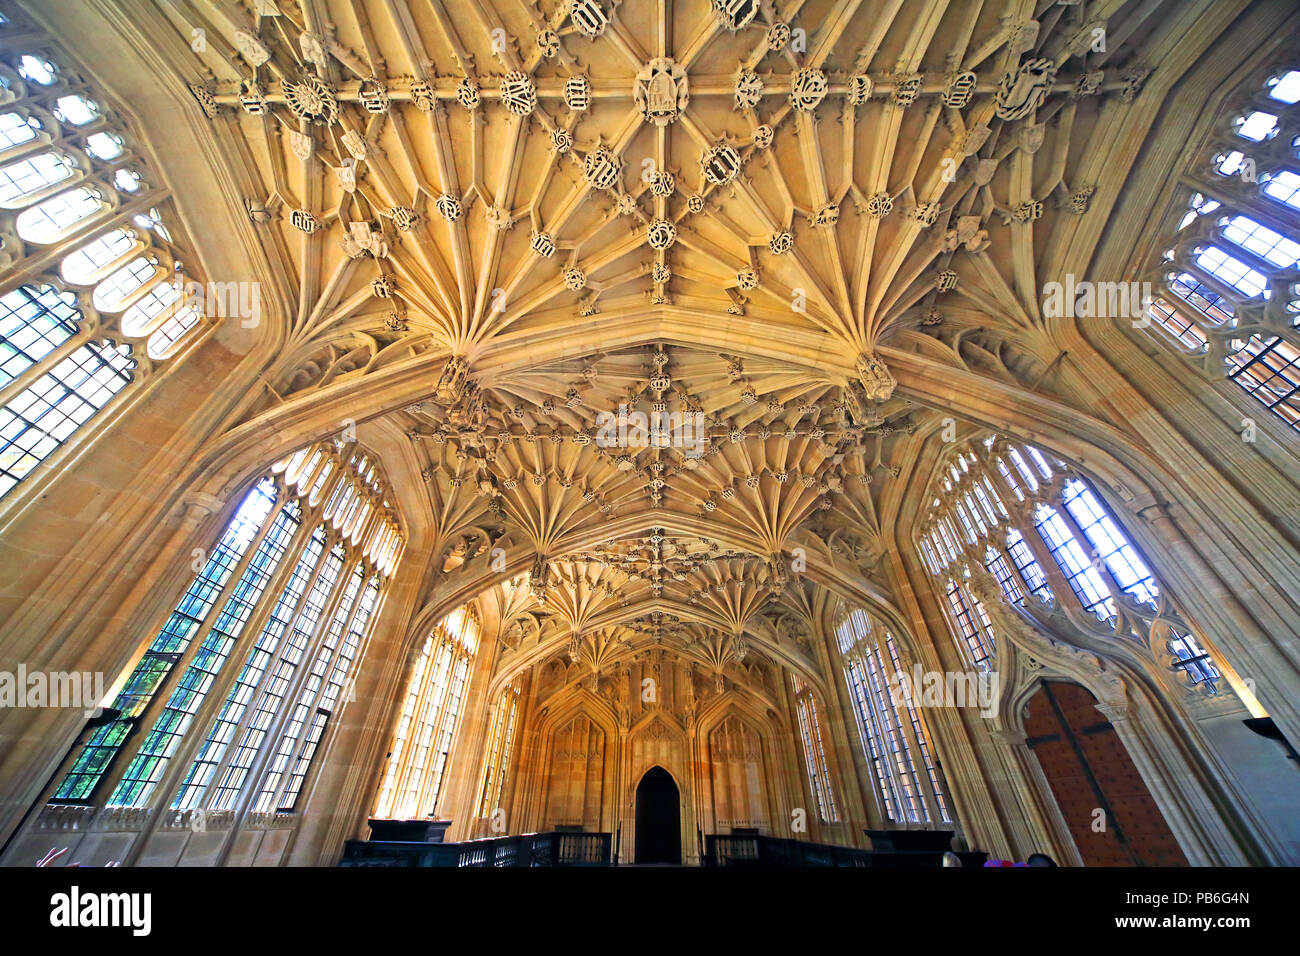 Divinity School, Bodleian Library, Broad Street, Oxford, Cottswolds, South East England, UK Stock Photo